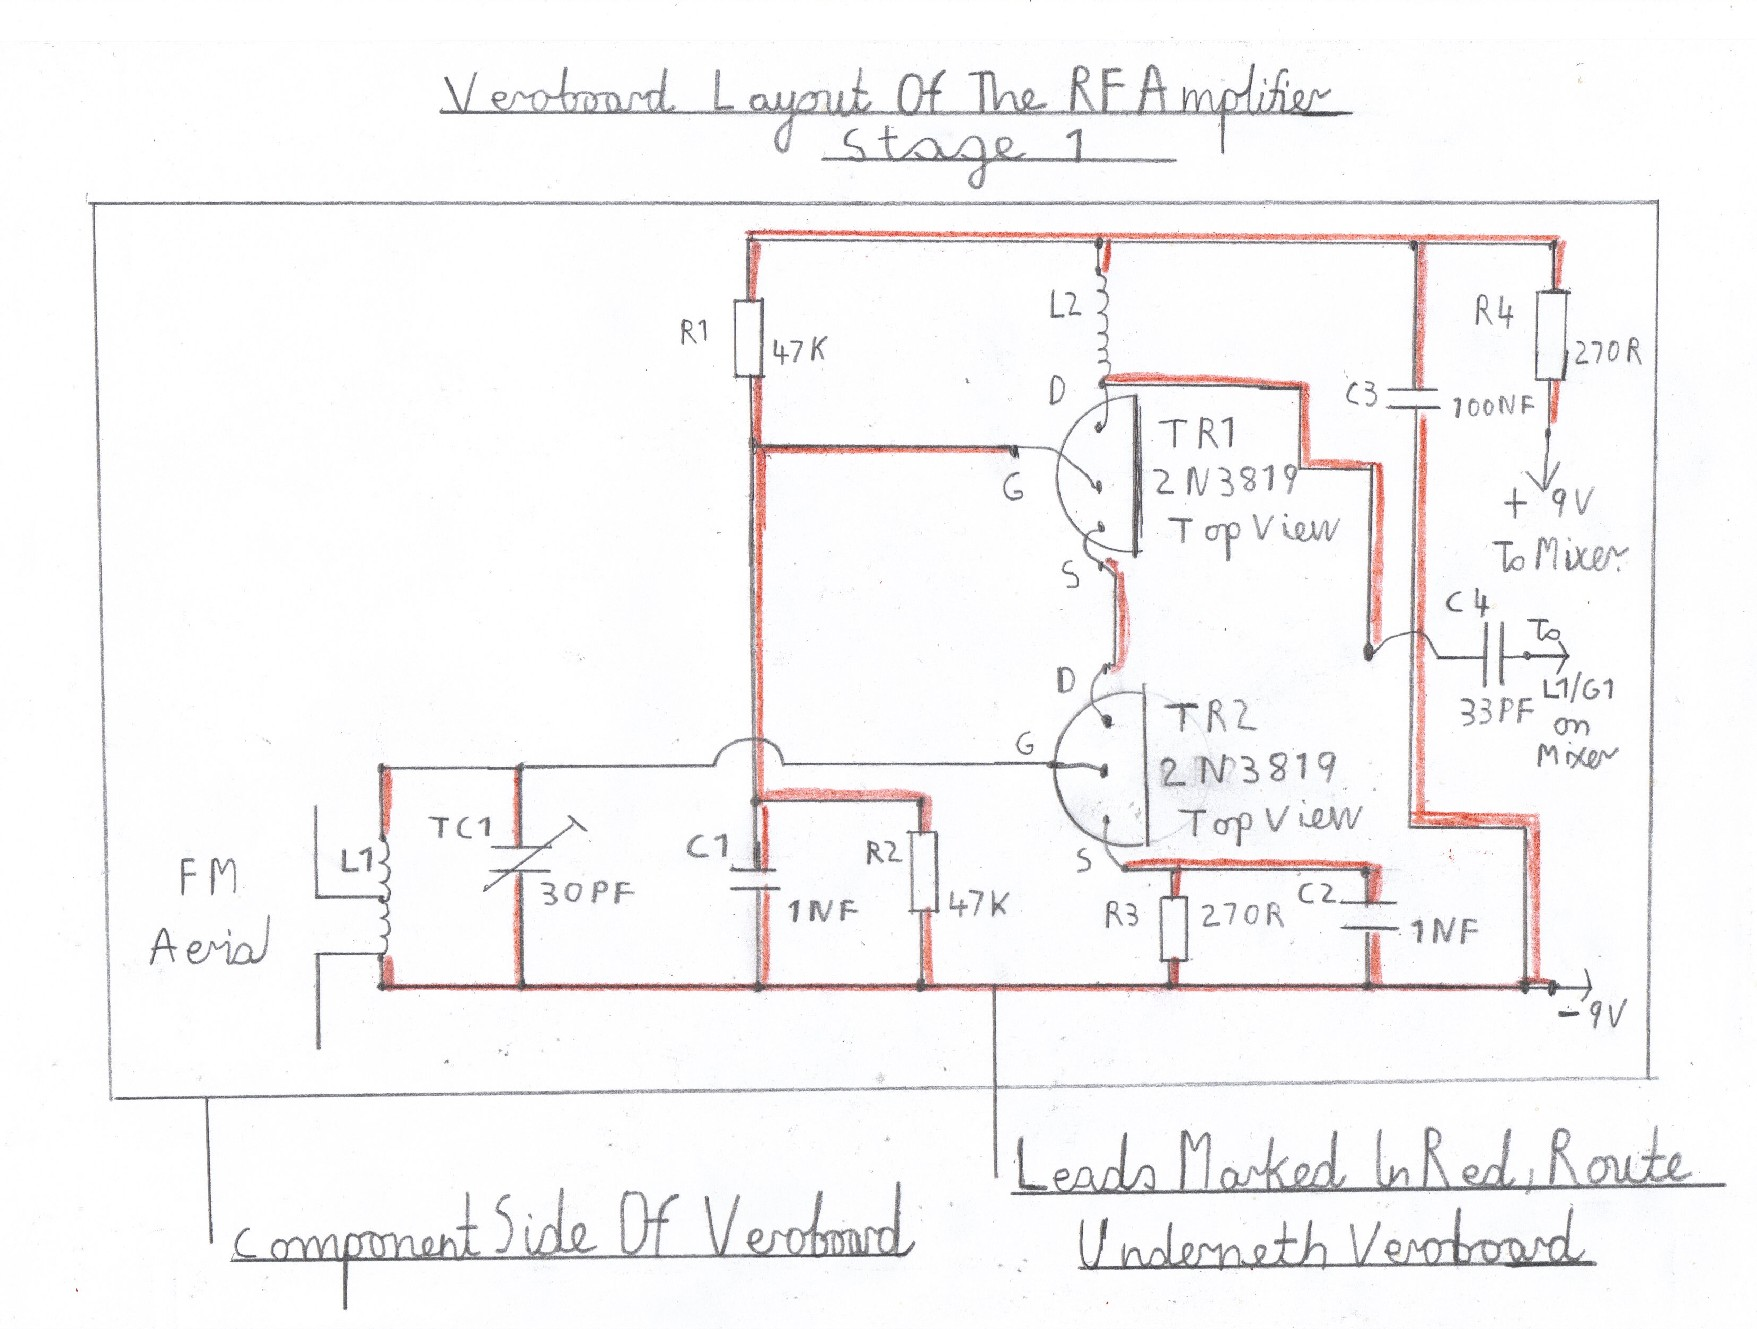 vhfrfampone transistor fm superhet receiver kitchen electrical wiring diagrams at eliteediting.co